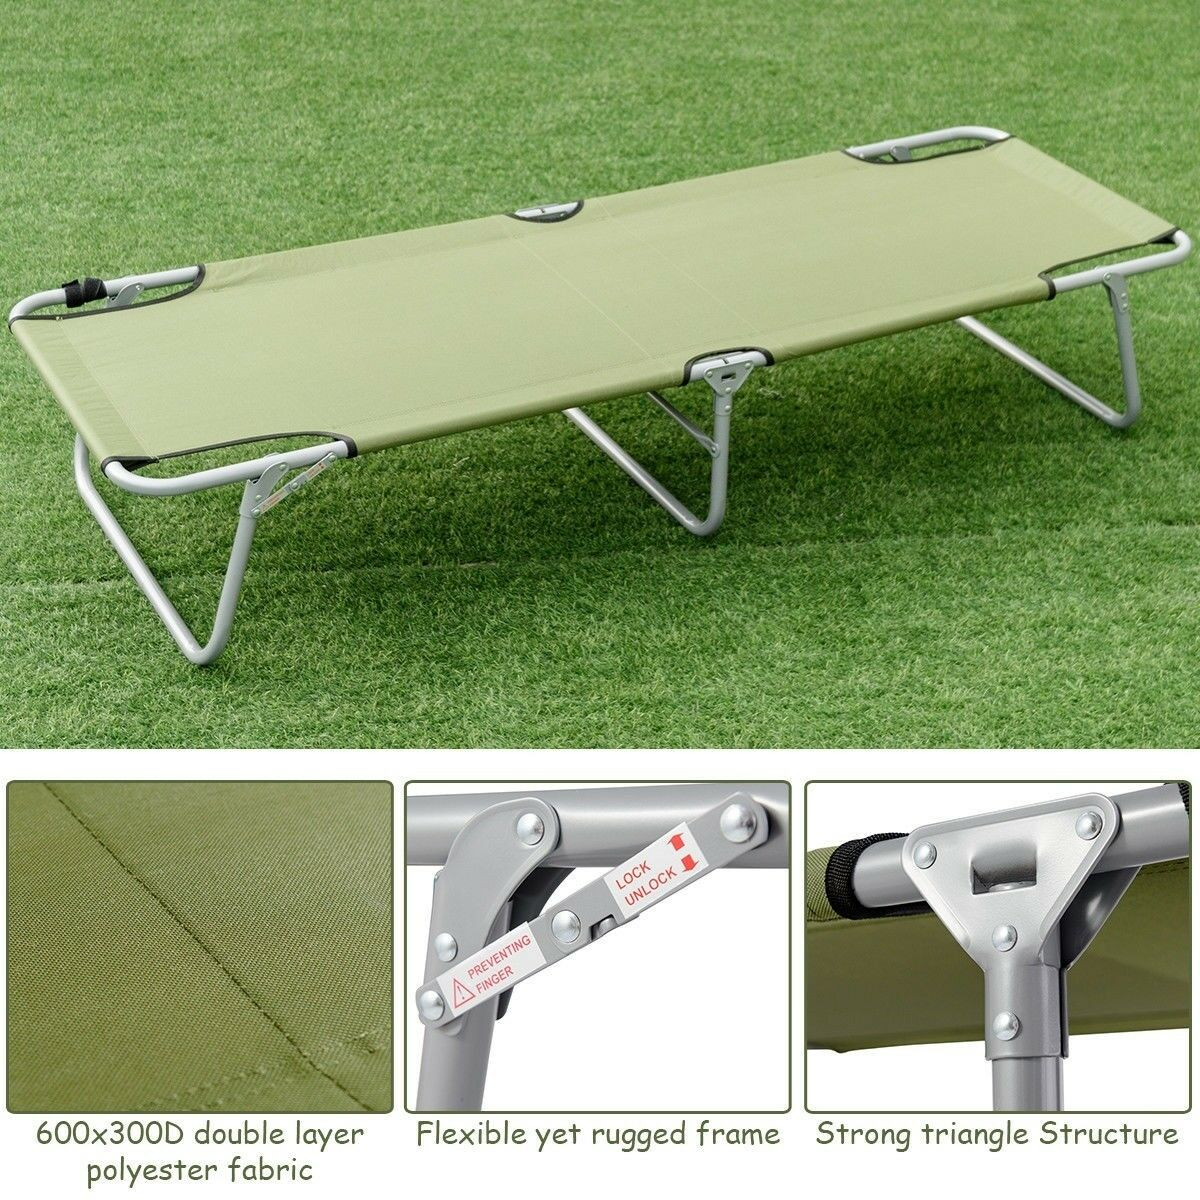 Outdoor  Travel Camping Portable Bed Army Military Foldable Tent Cot Bed 250 lbs  official quality